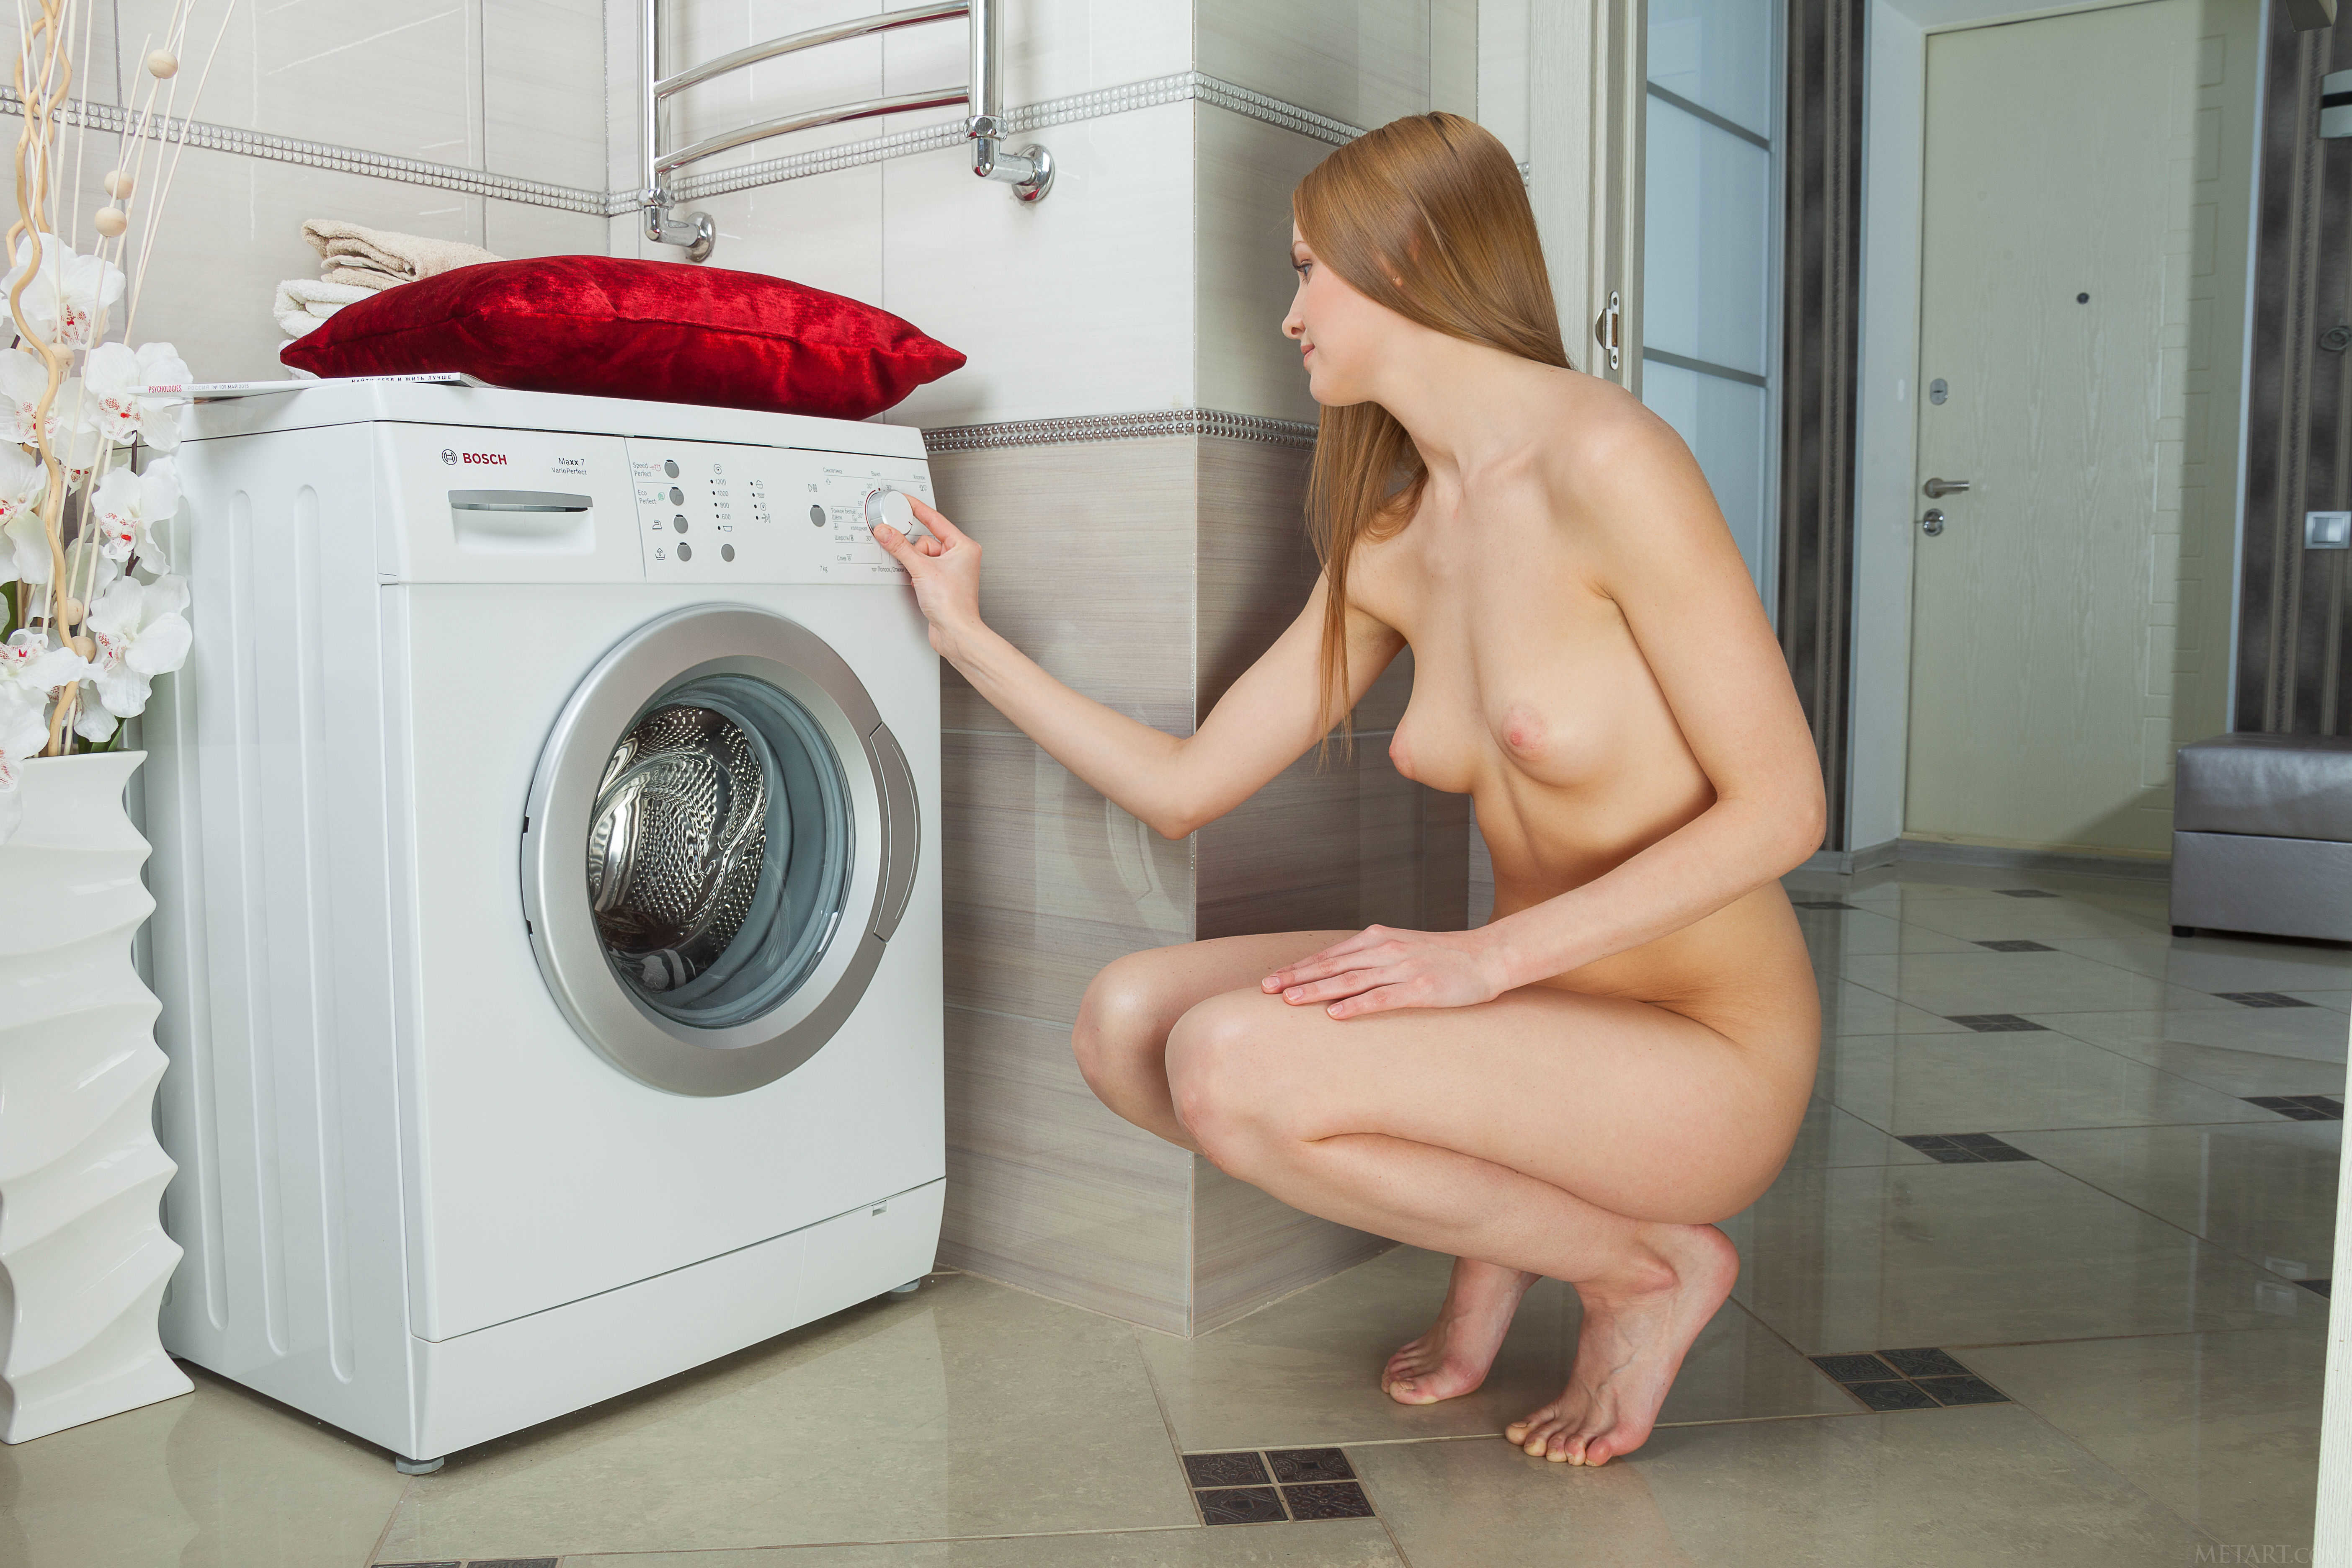 laundry-girls-nude-washing-machine-photo-mix-98